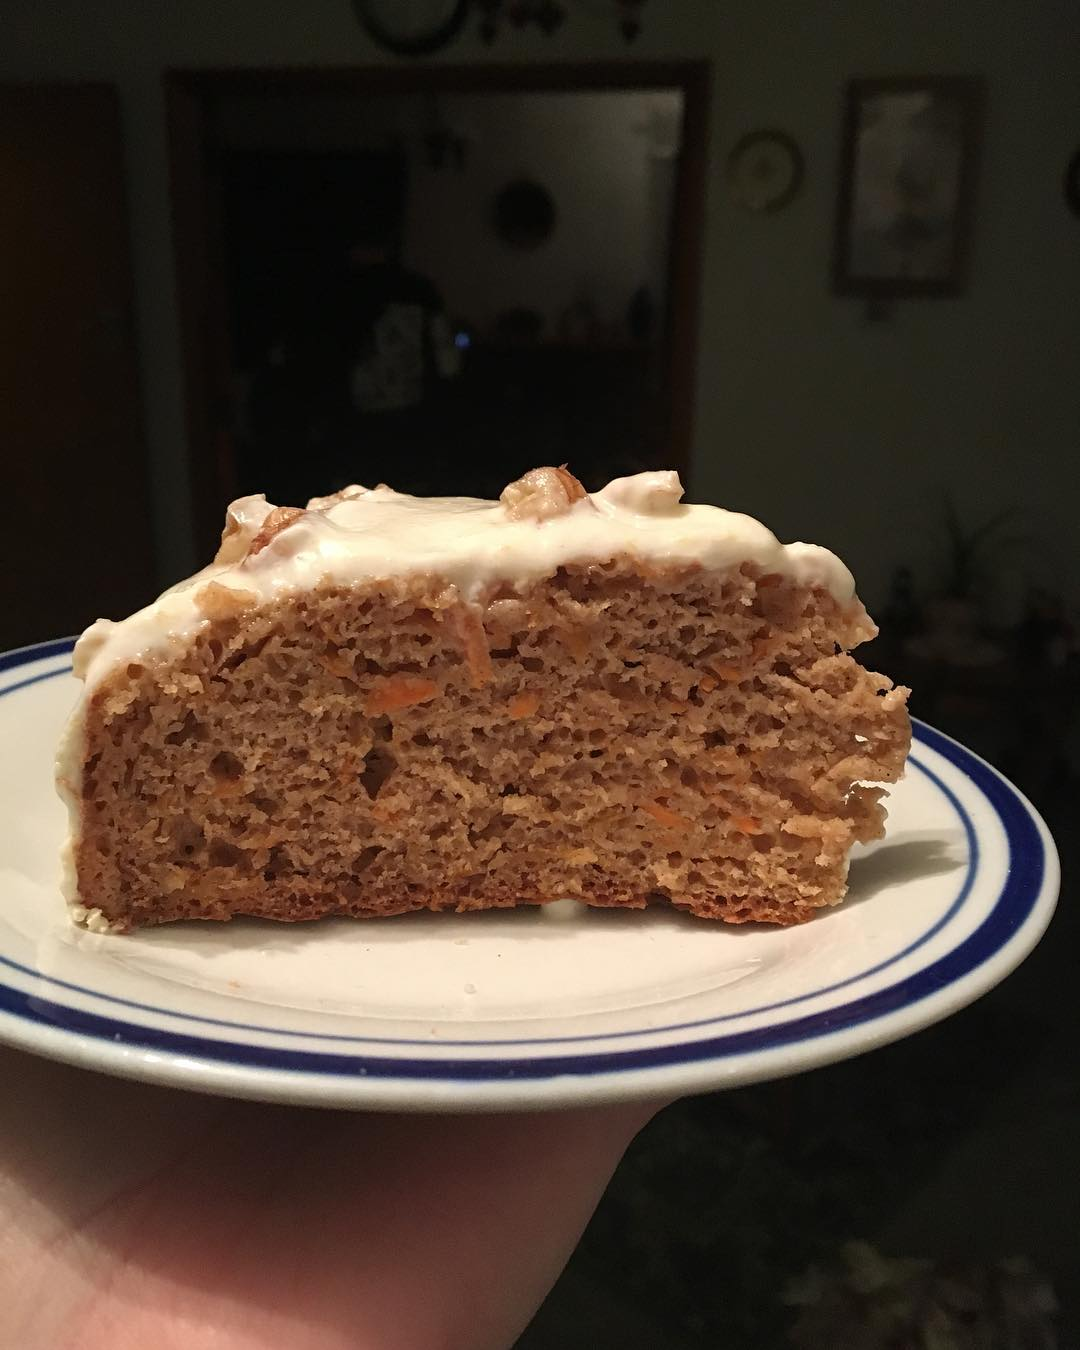 classic carrot cake by @maddie_smiith